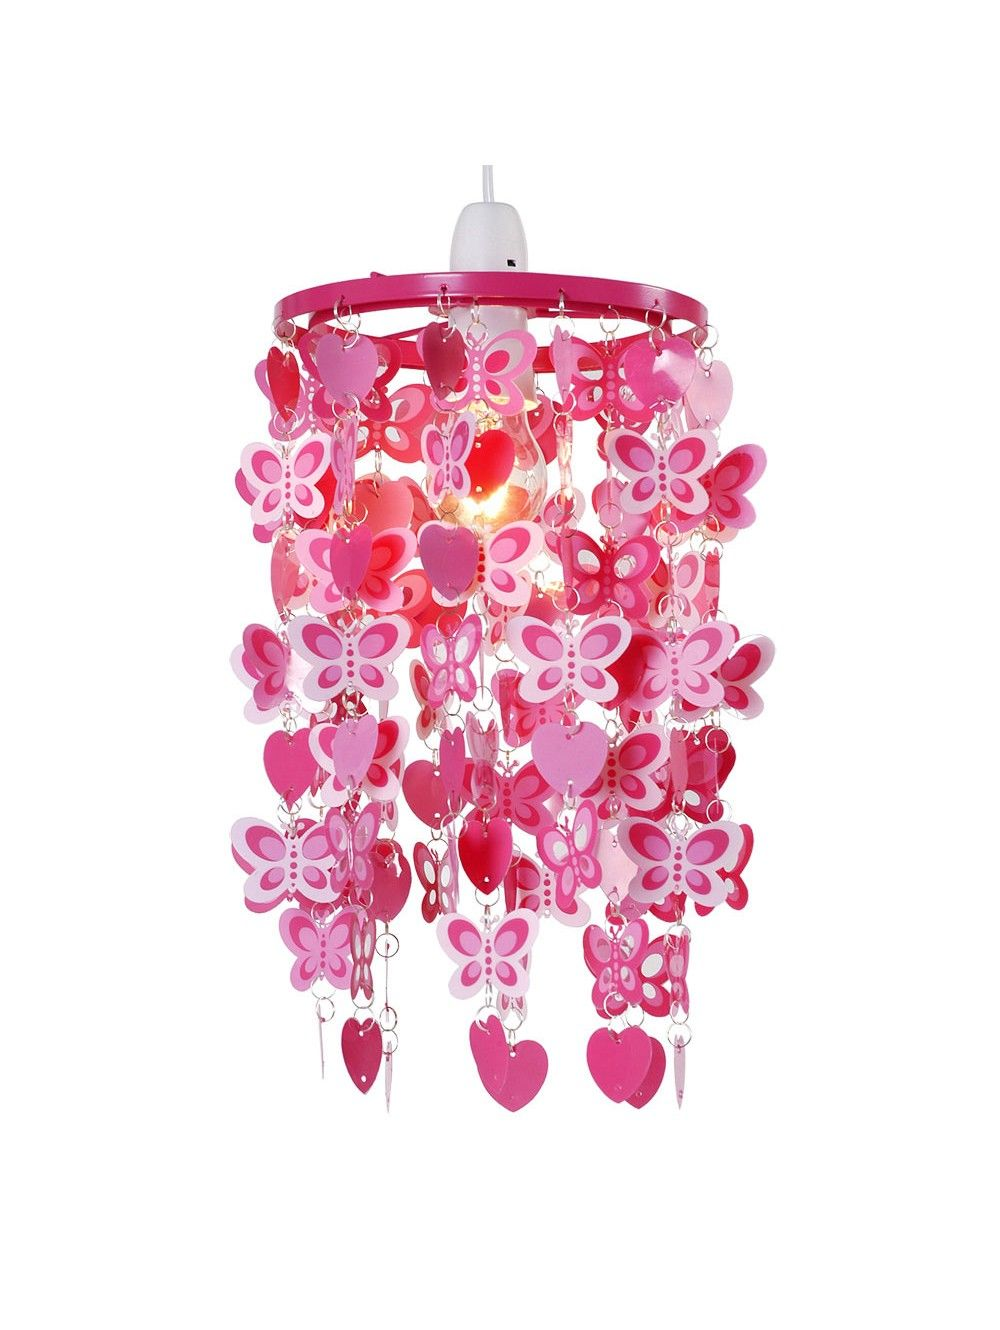 Childrens Bedroom Pendant Ceiling Light Shade Width Pink Hearts - Lamps childrens bedrooms